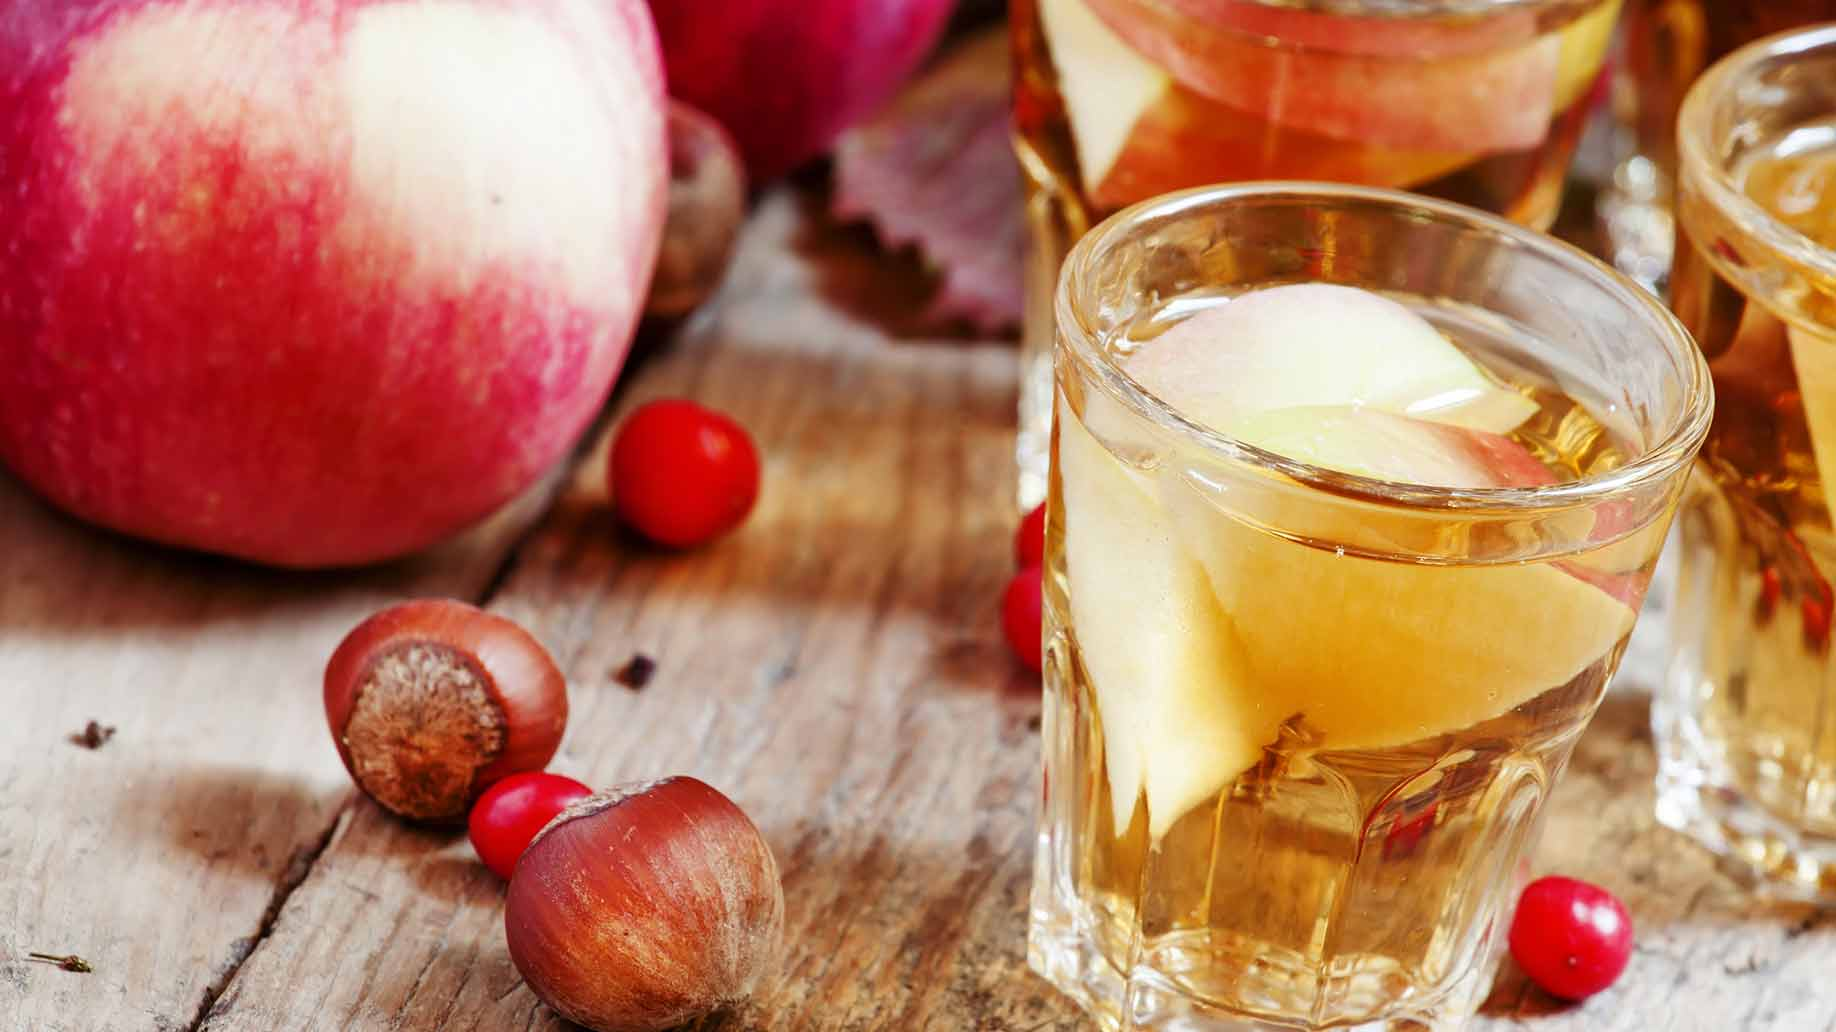 apple-cider-vinegar-cleanse-juice